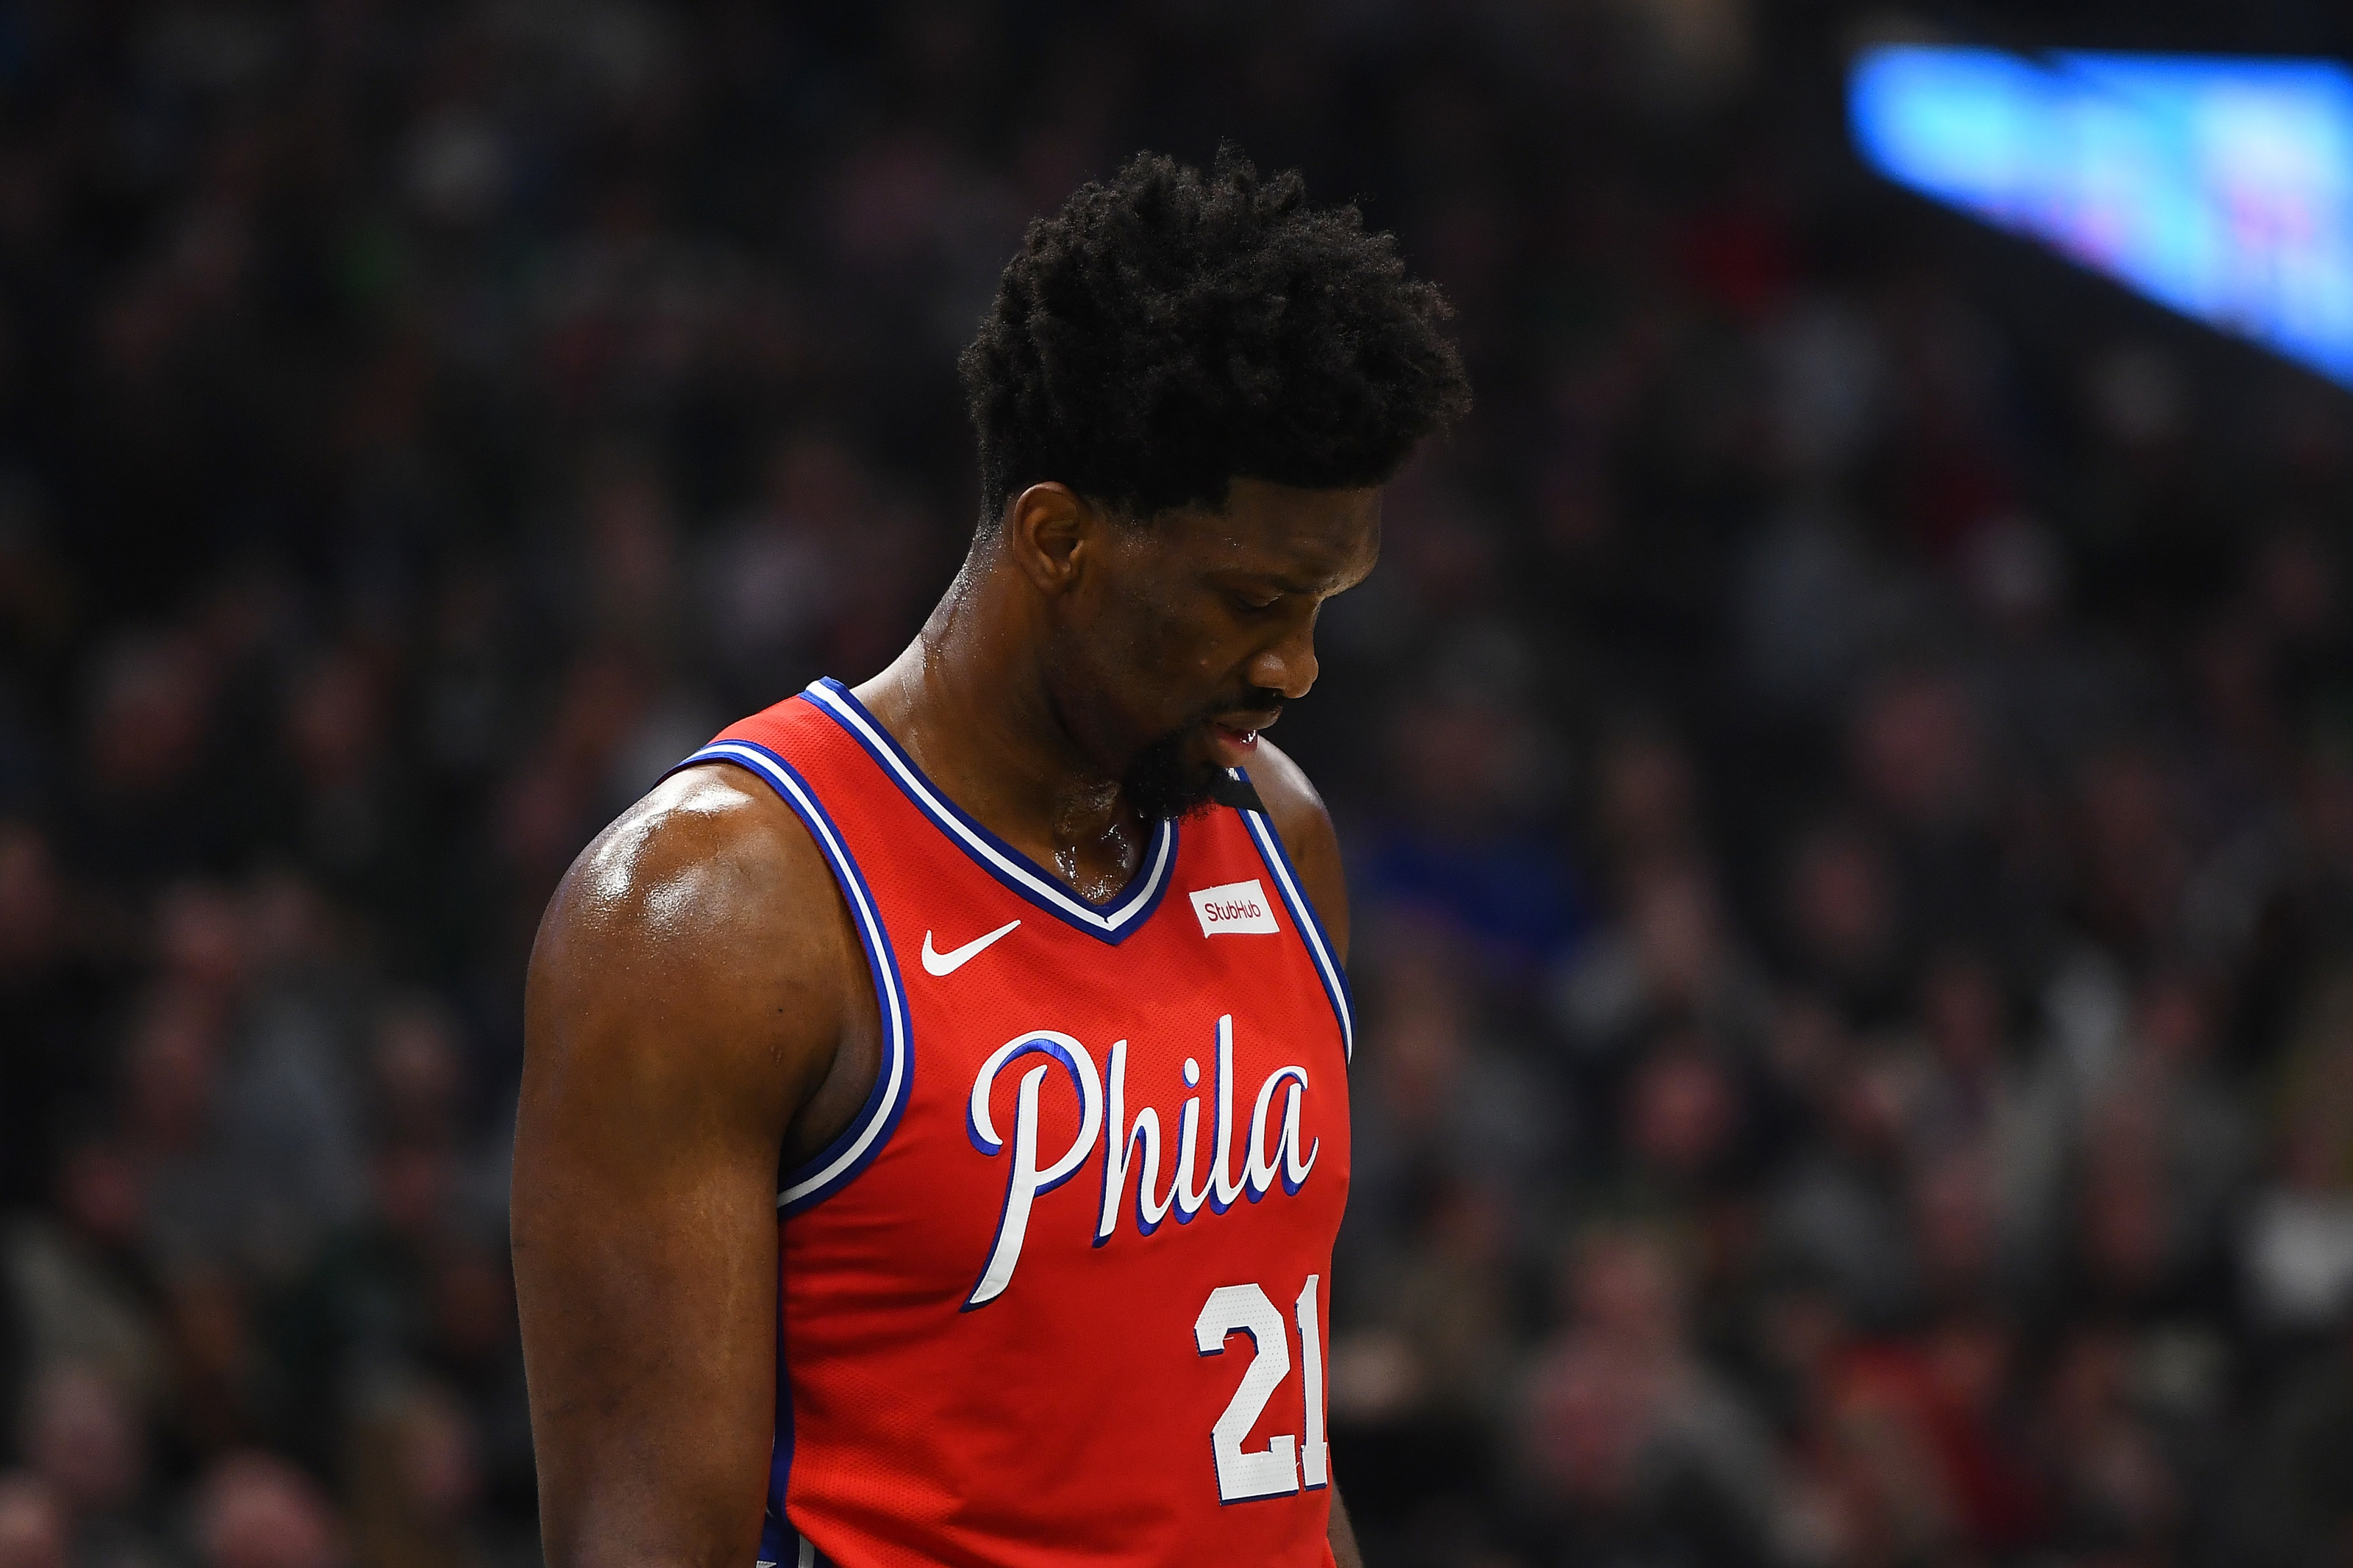 Milwaukee Bucks: Joel Embiid had no interest in playing in Milwaukee before 2014 Draft